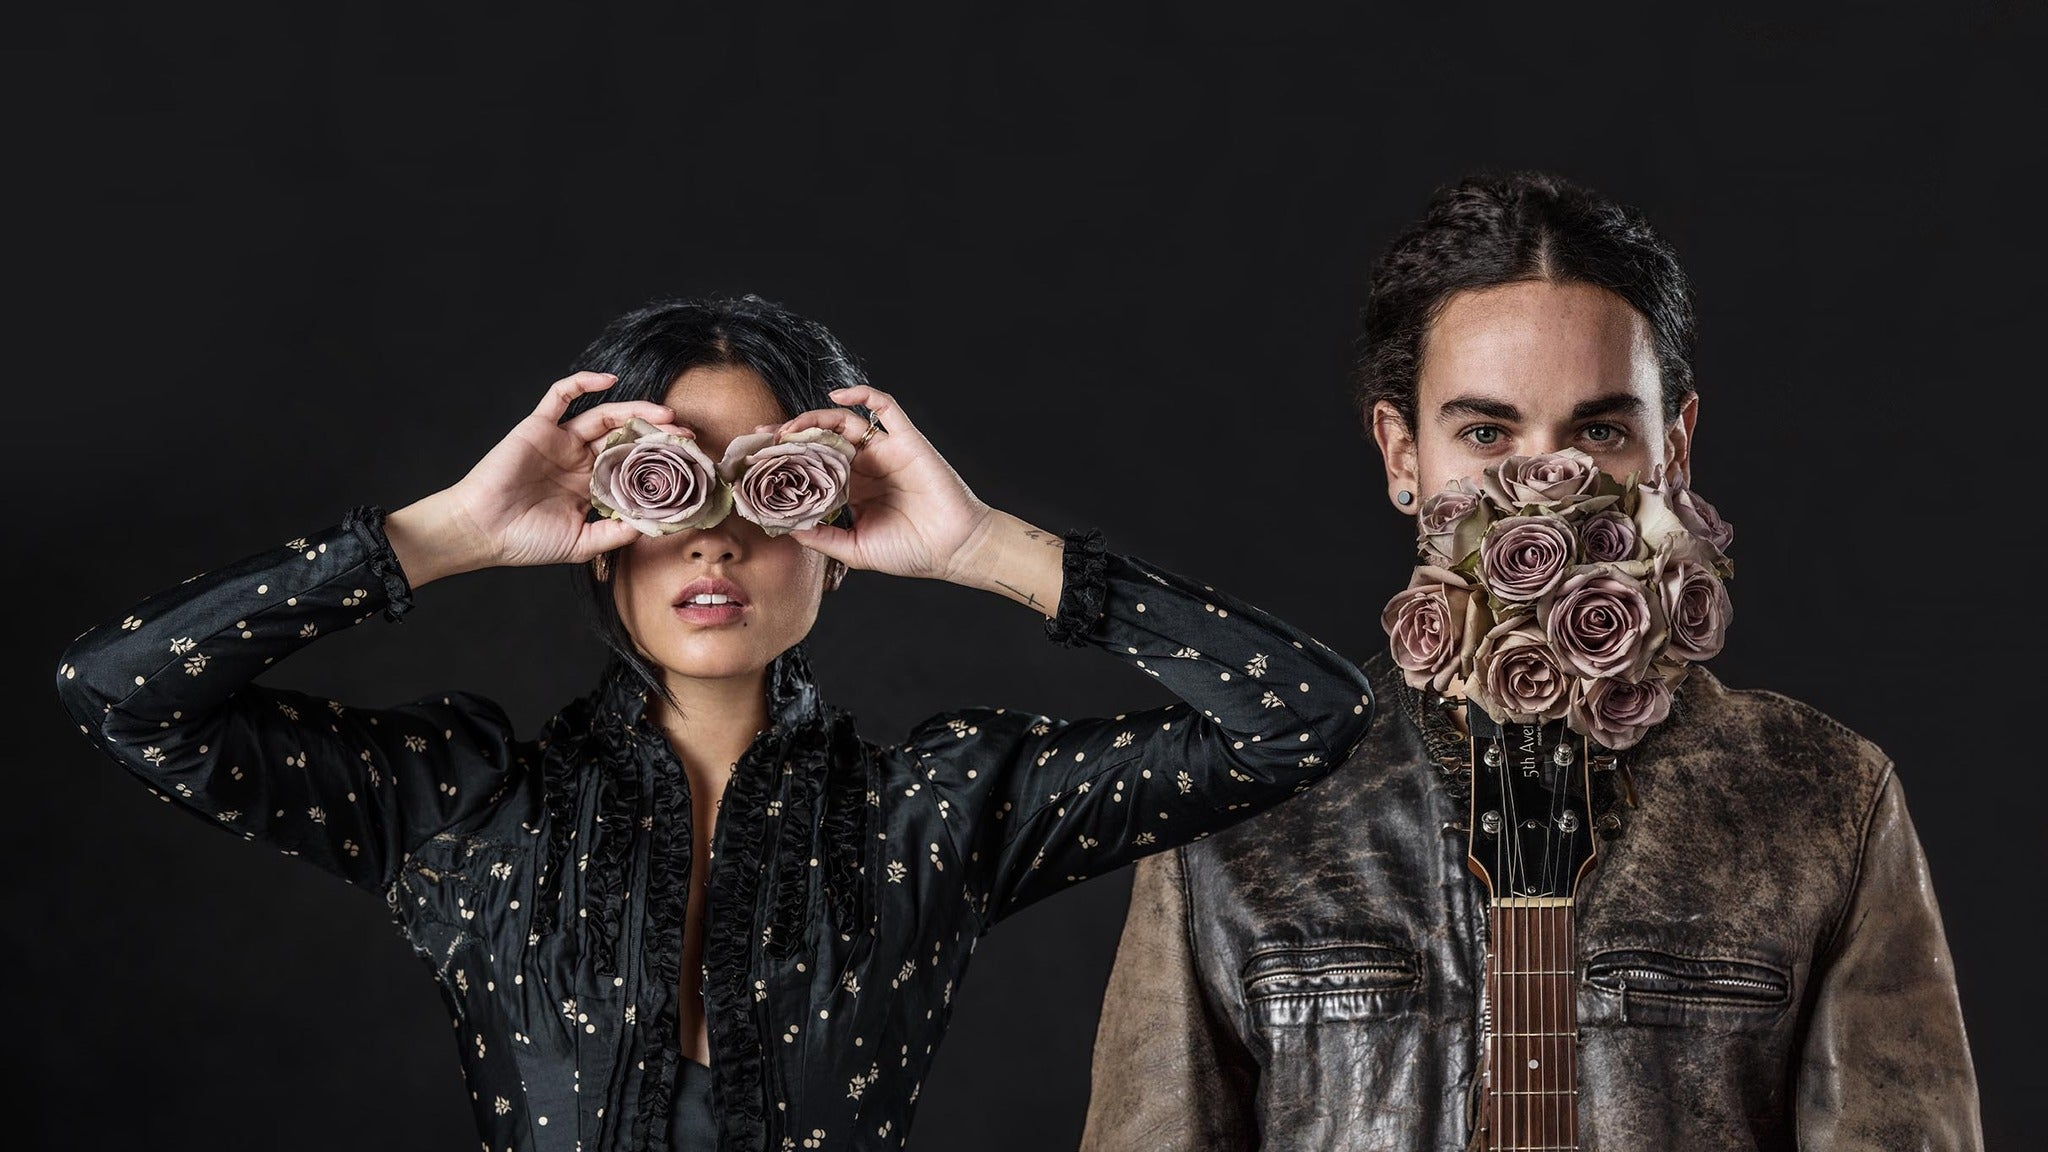 Us The Duo - Just Love Tour at House of Blues Dallas